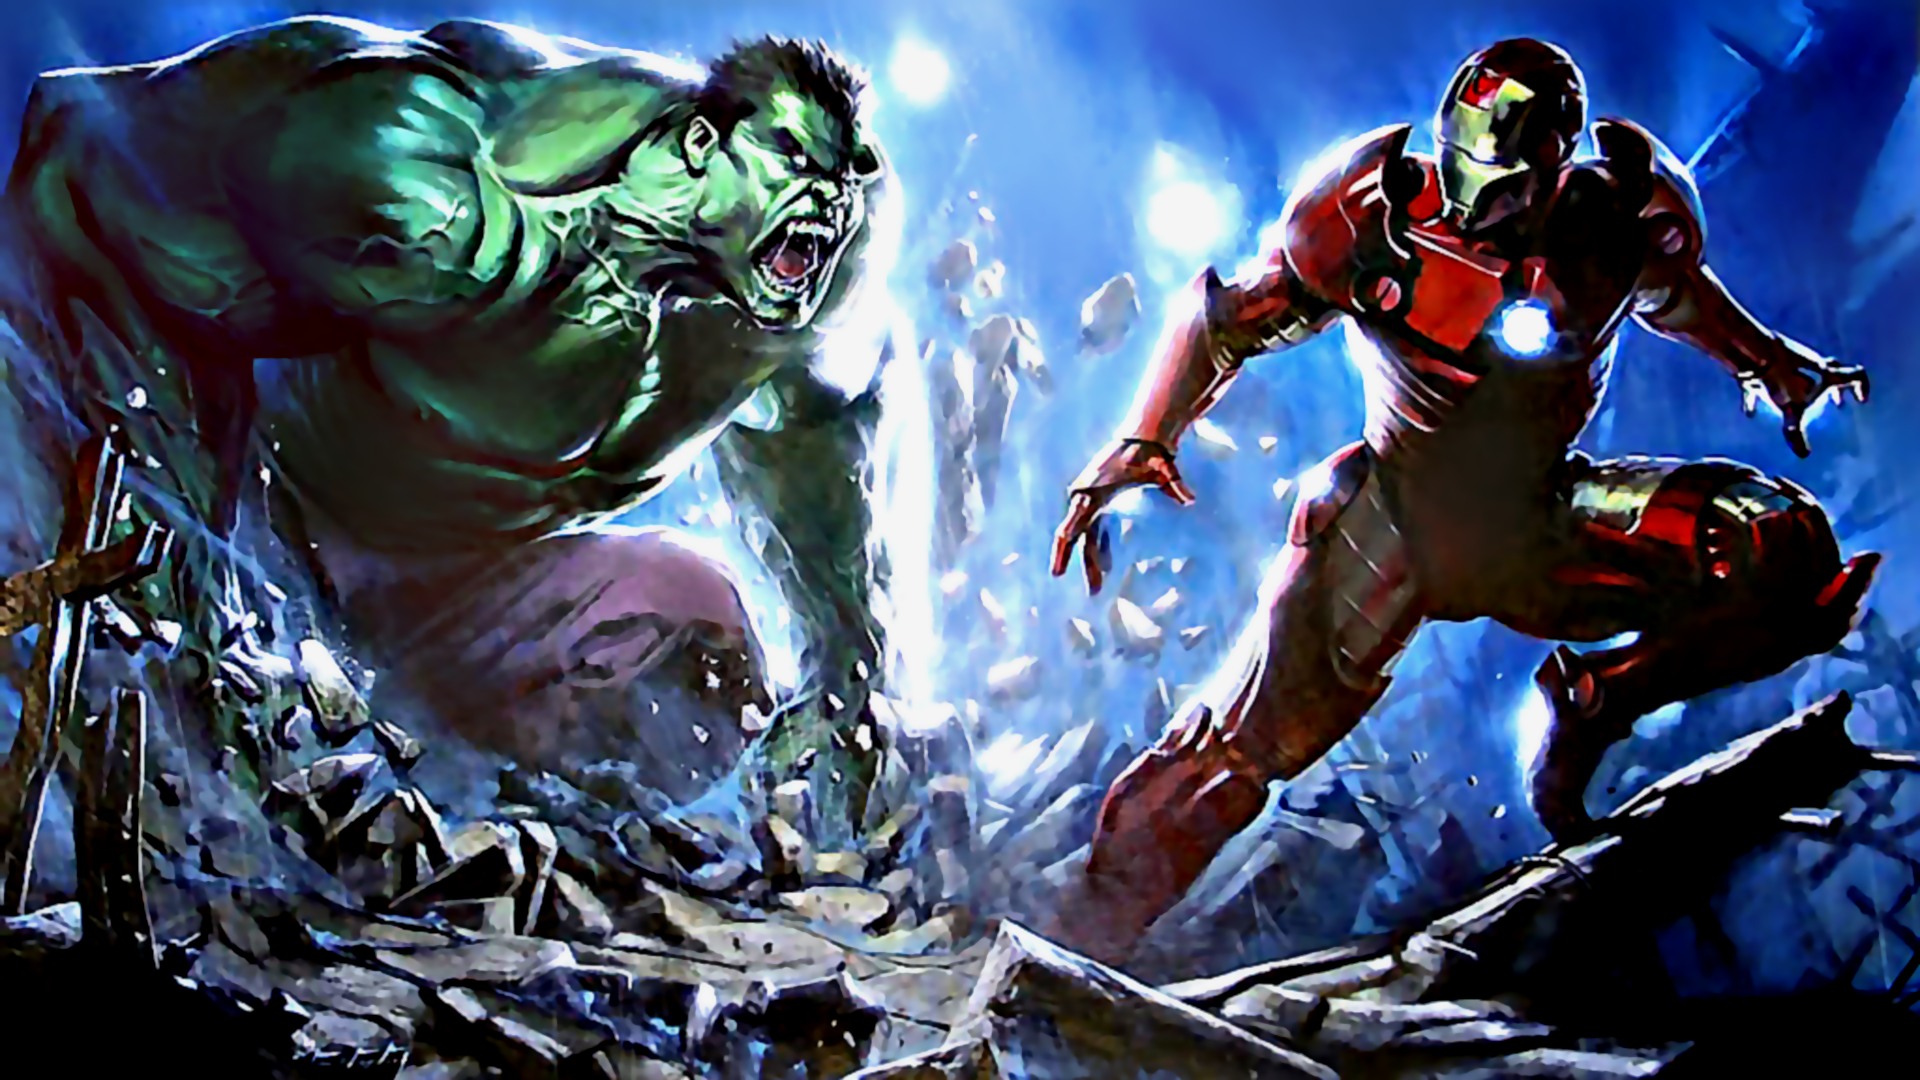 Angry Hulk Wallpaper 1024x768 Pixel Popular Hd Wallpaper 27552